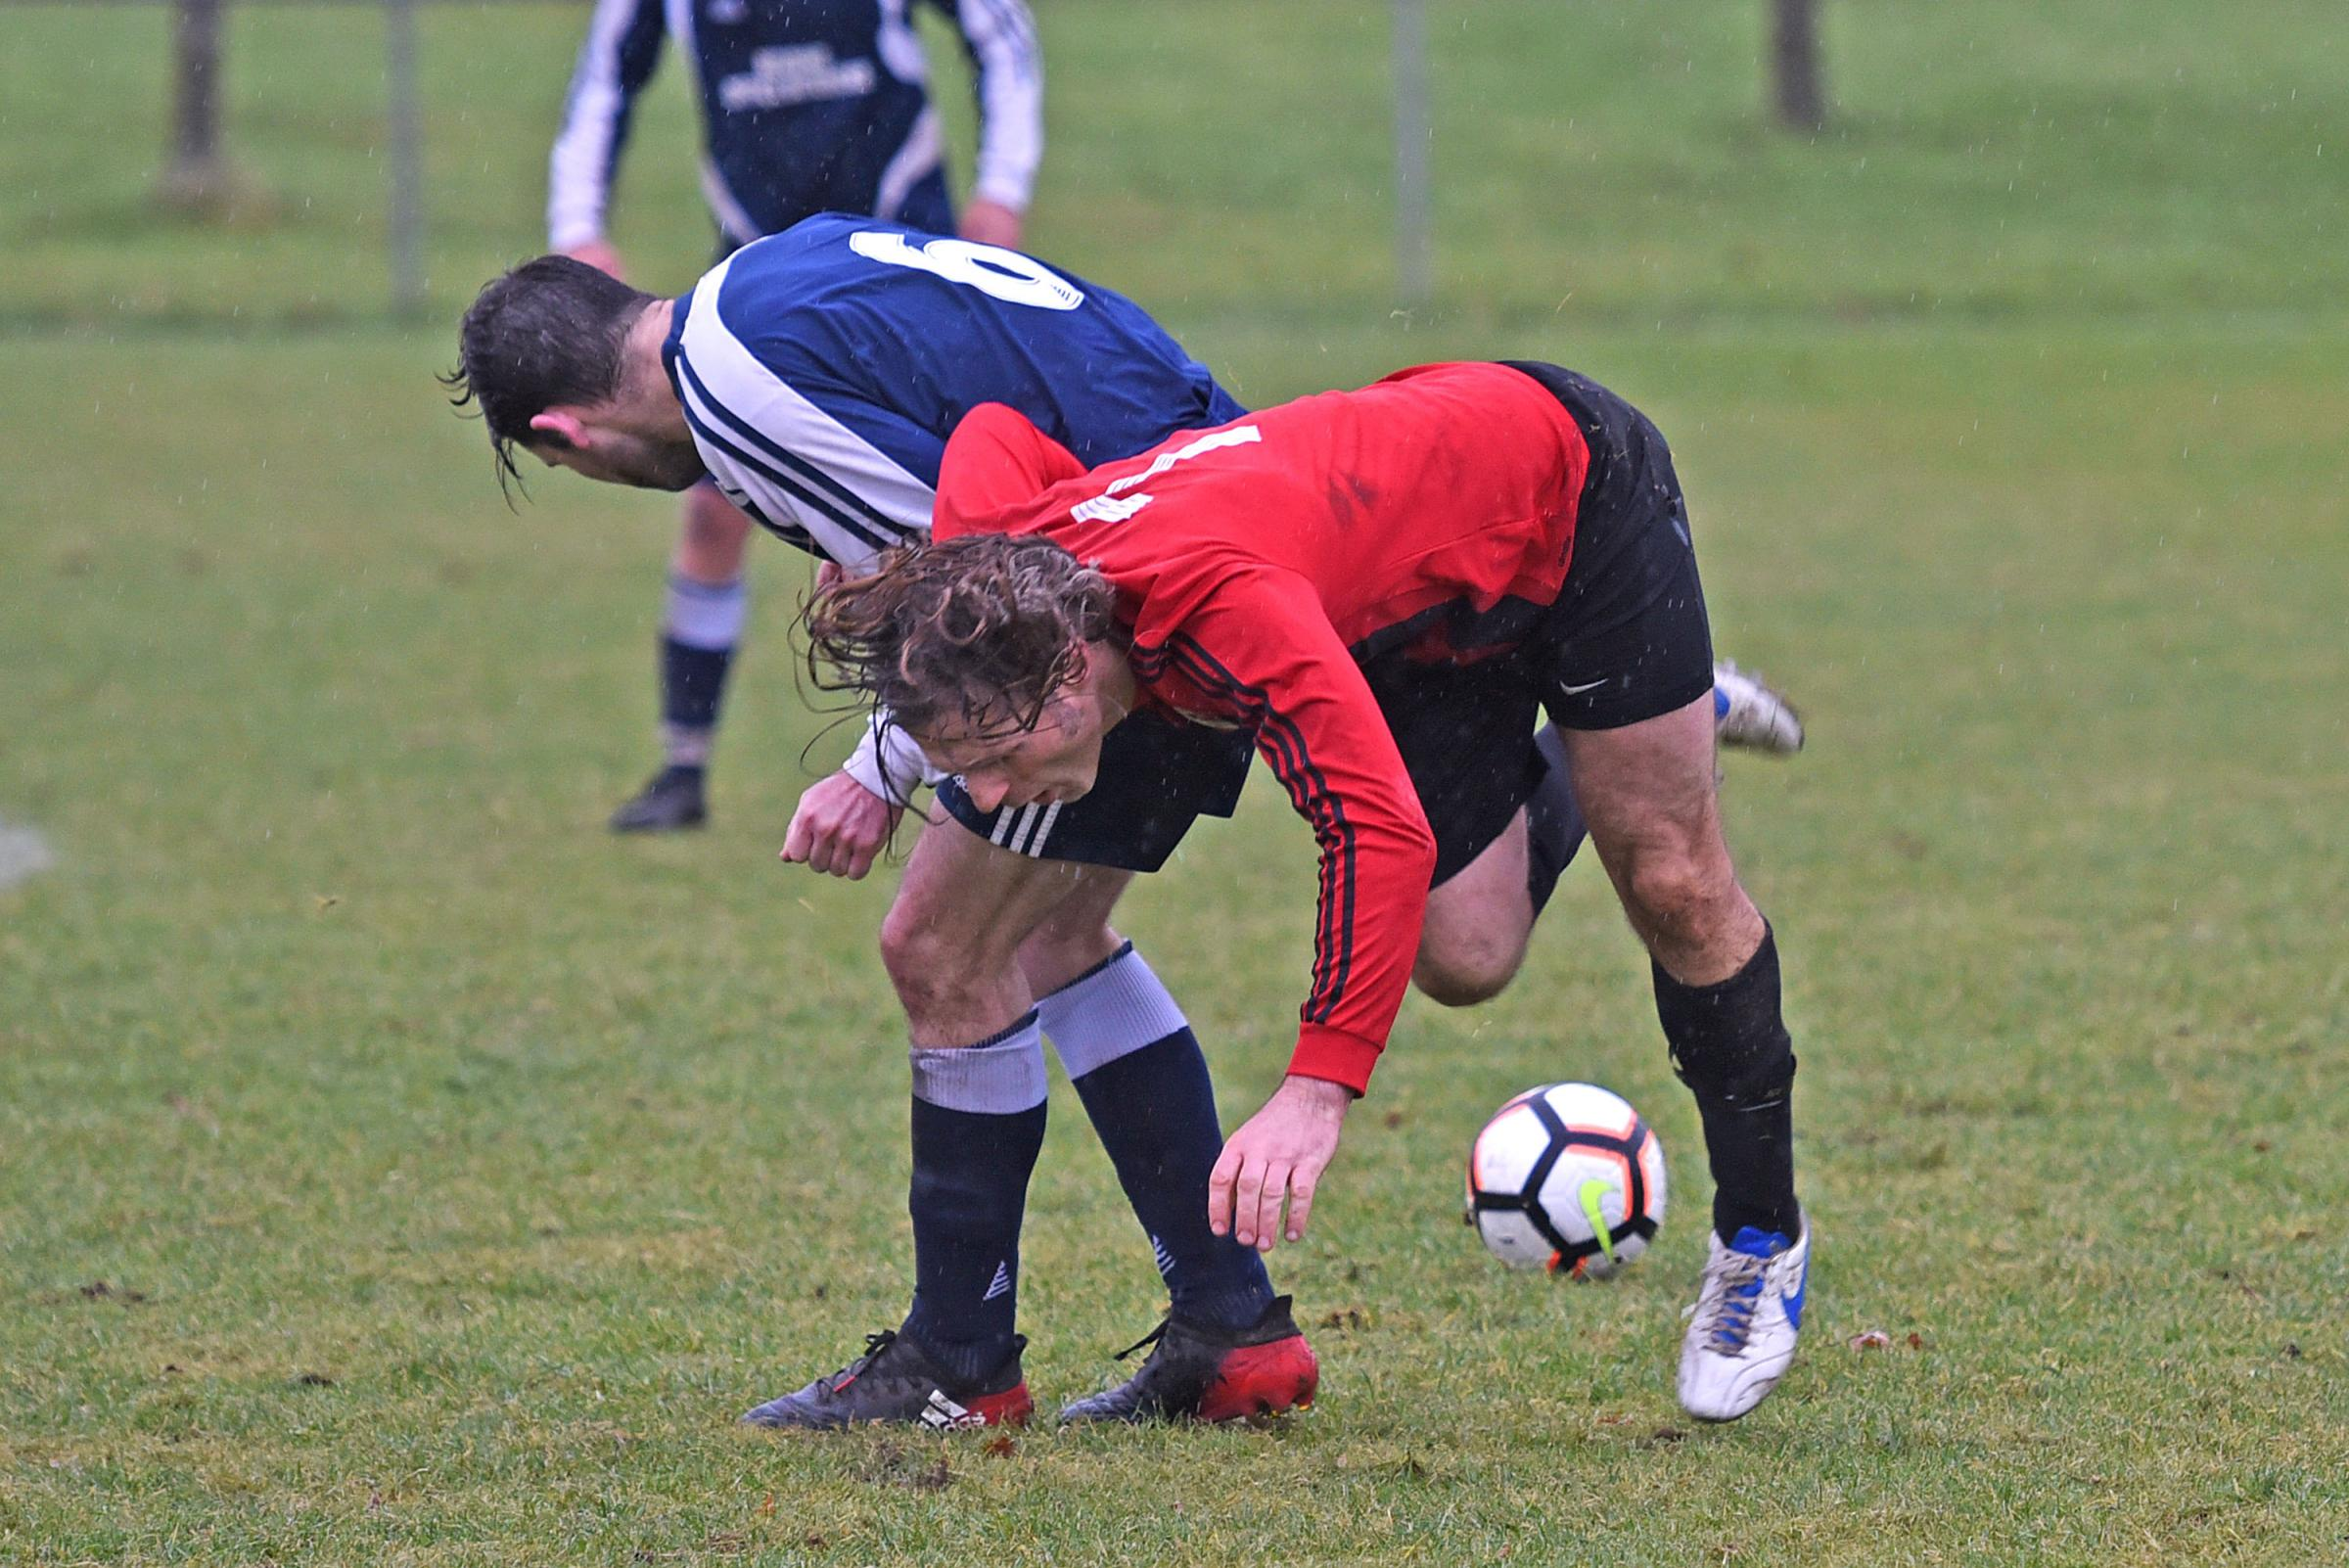 Wycombe Wanderers manager and Finchampstead Athletic player Gareth Ainsworth is sent sprawling by a Purley opponent. Pictures: Emma Sheppard. Code 171250.